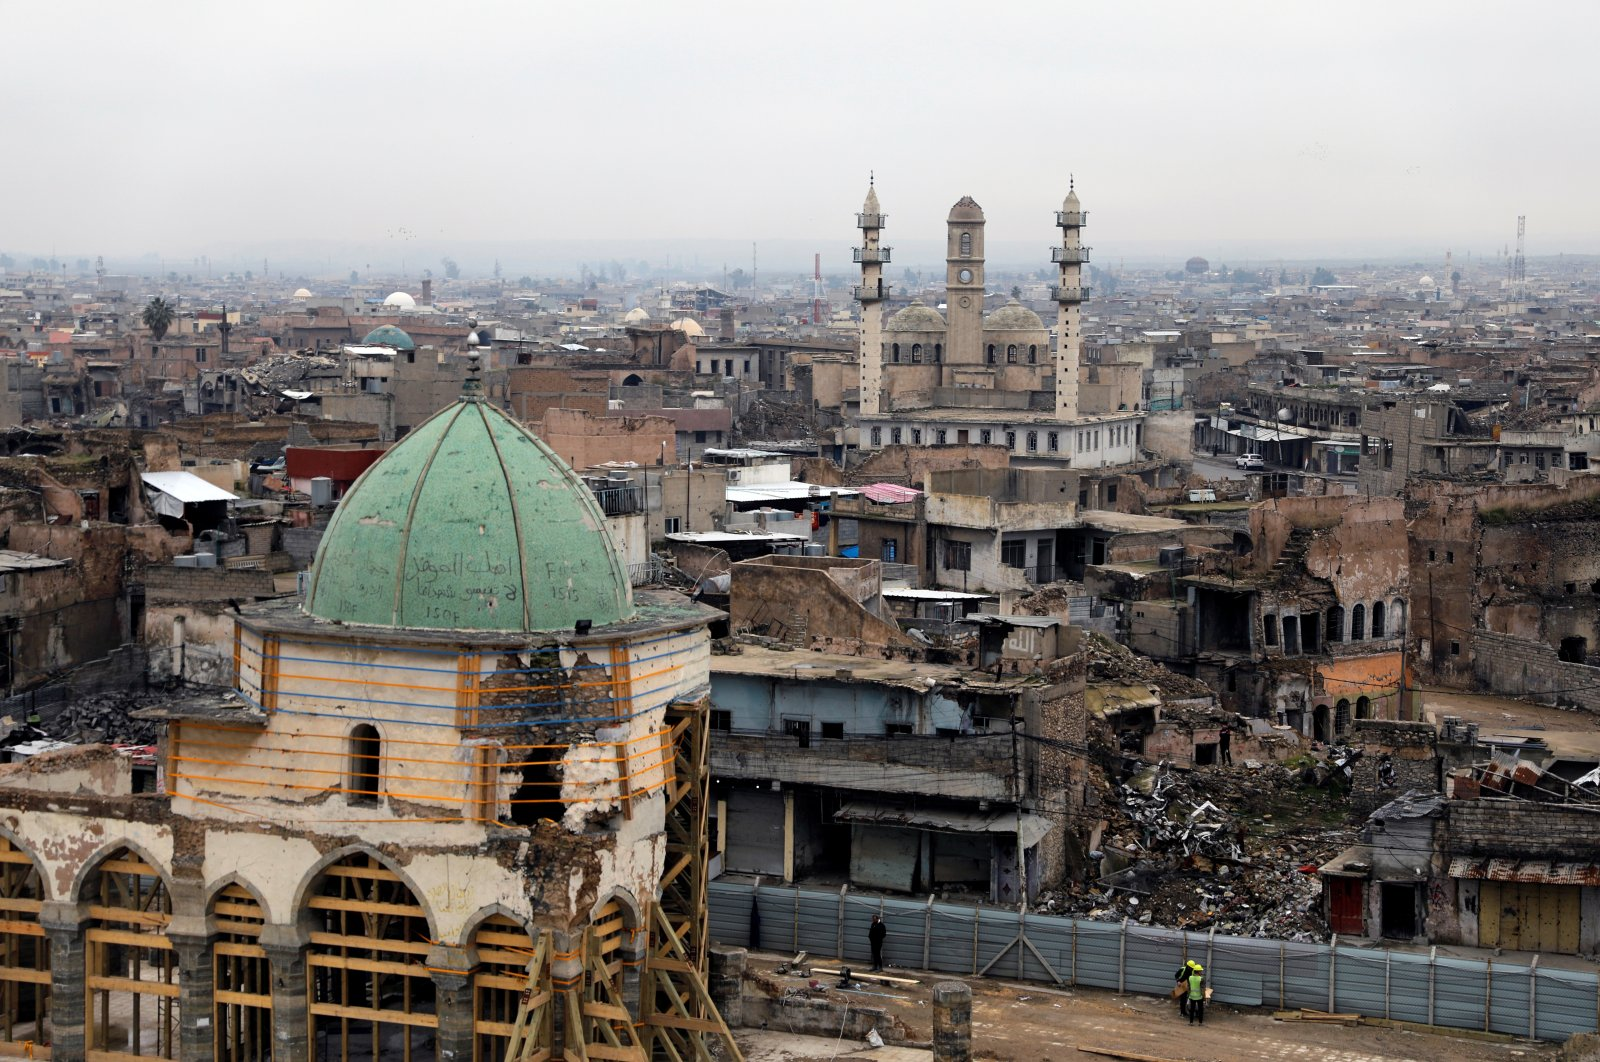 A general view of the Grand Mosque of al-Nuri during its reconstruction, in the old city of Mosul, Iraq, Jan. 23, 2020. (Reuters Photo)